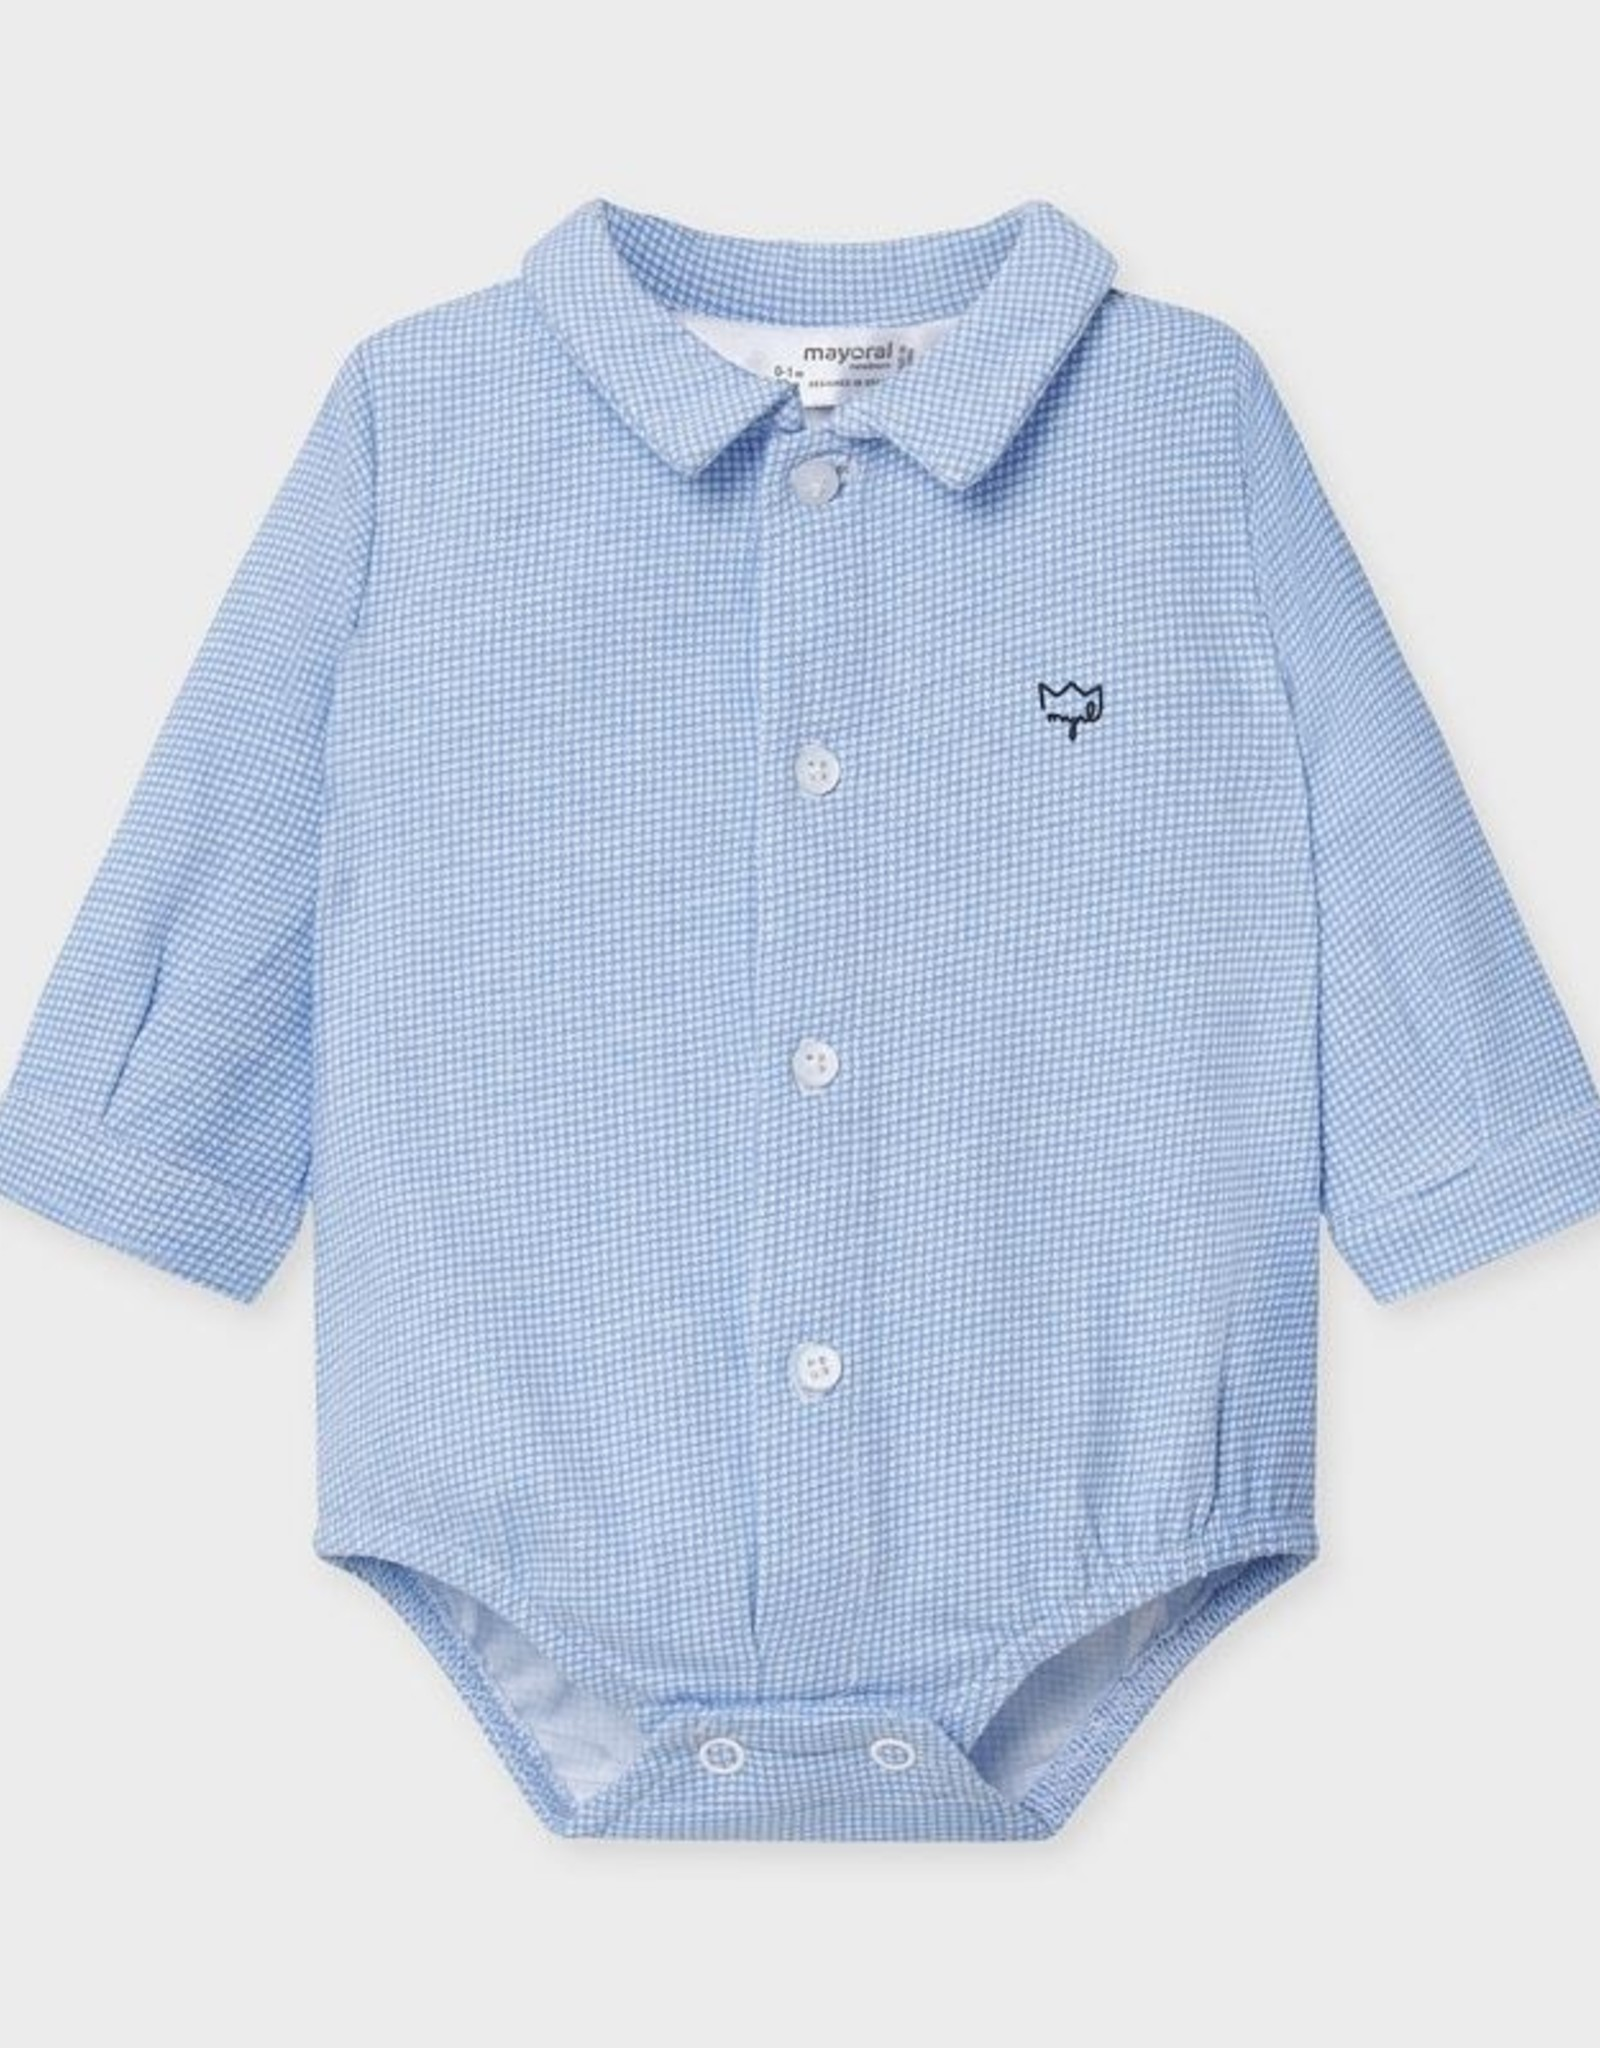 Mayoral FA20 Blue Collared Bodysuit